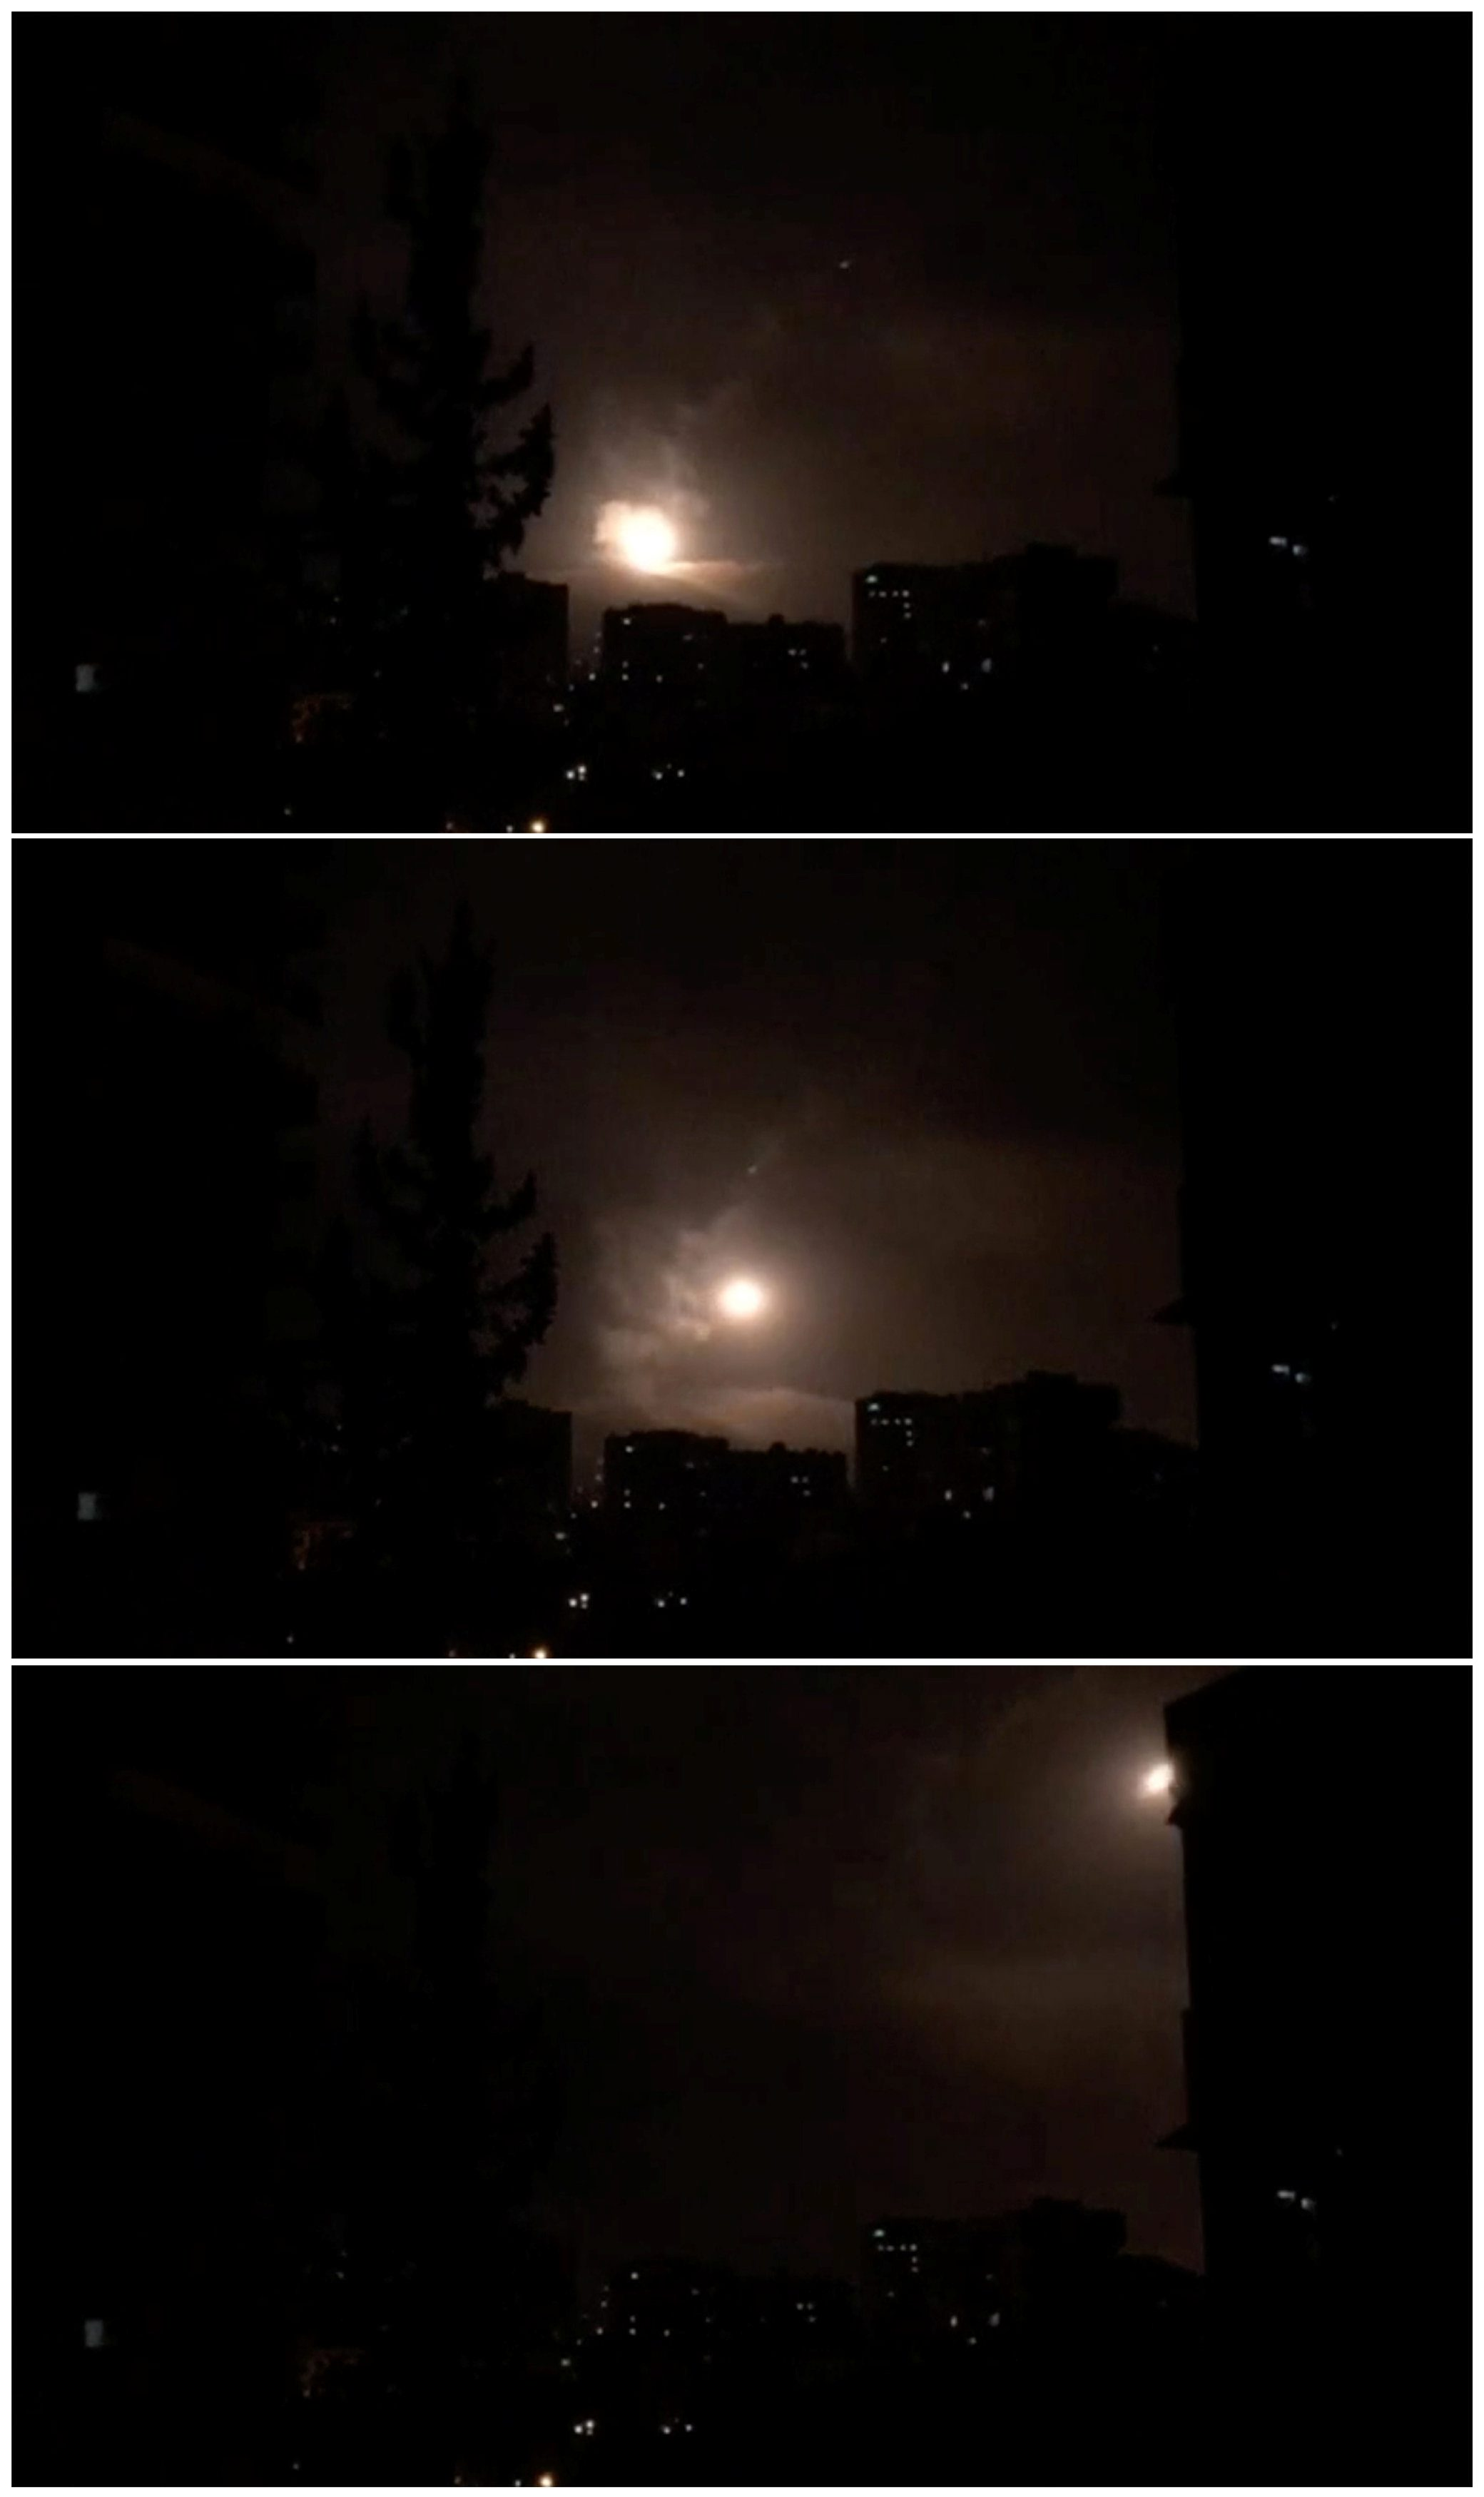 Syria air defences strike back after air strikes by U.S., British and French forces in Damascus, Syria in this combination photo of still images obtained from video dated early April 14, 2018. SYRIA TV via Reuters TV   MANDATORY CREDIT. SYRIA OUT. NO RESALES. NO ARCHIVE